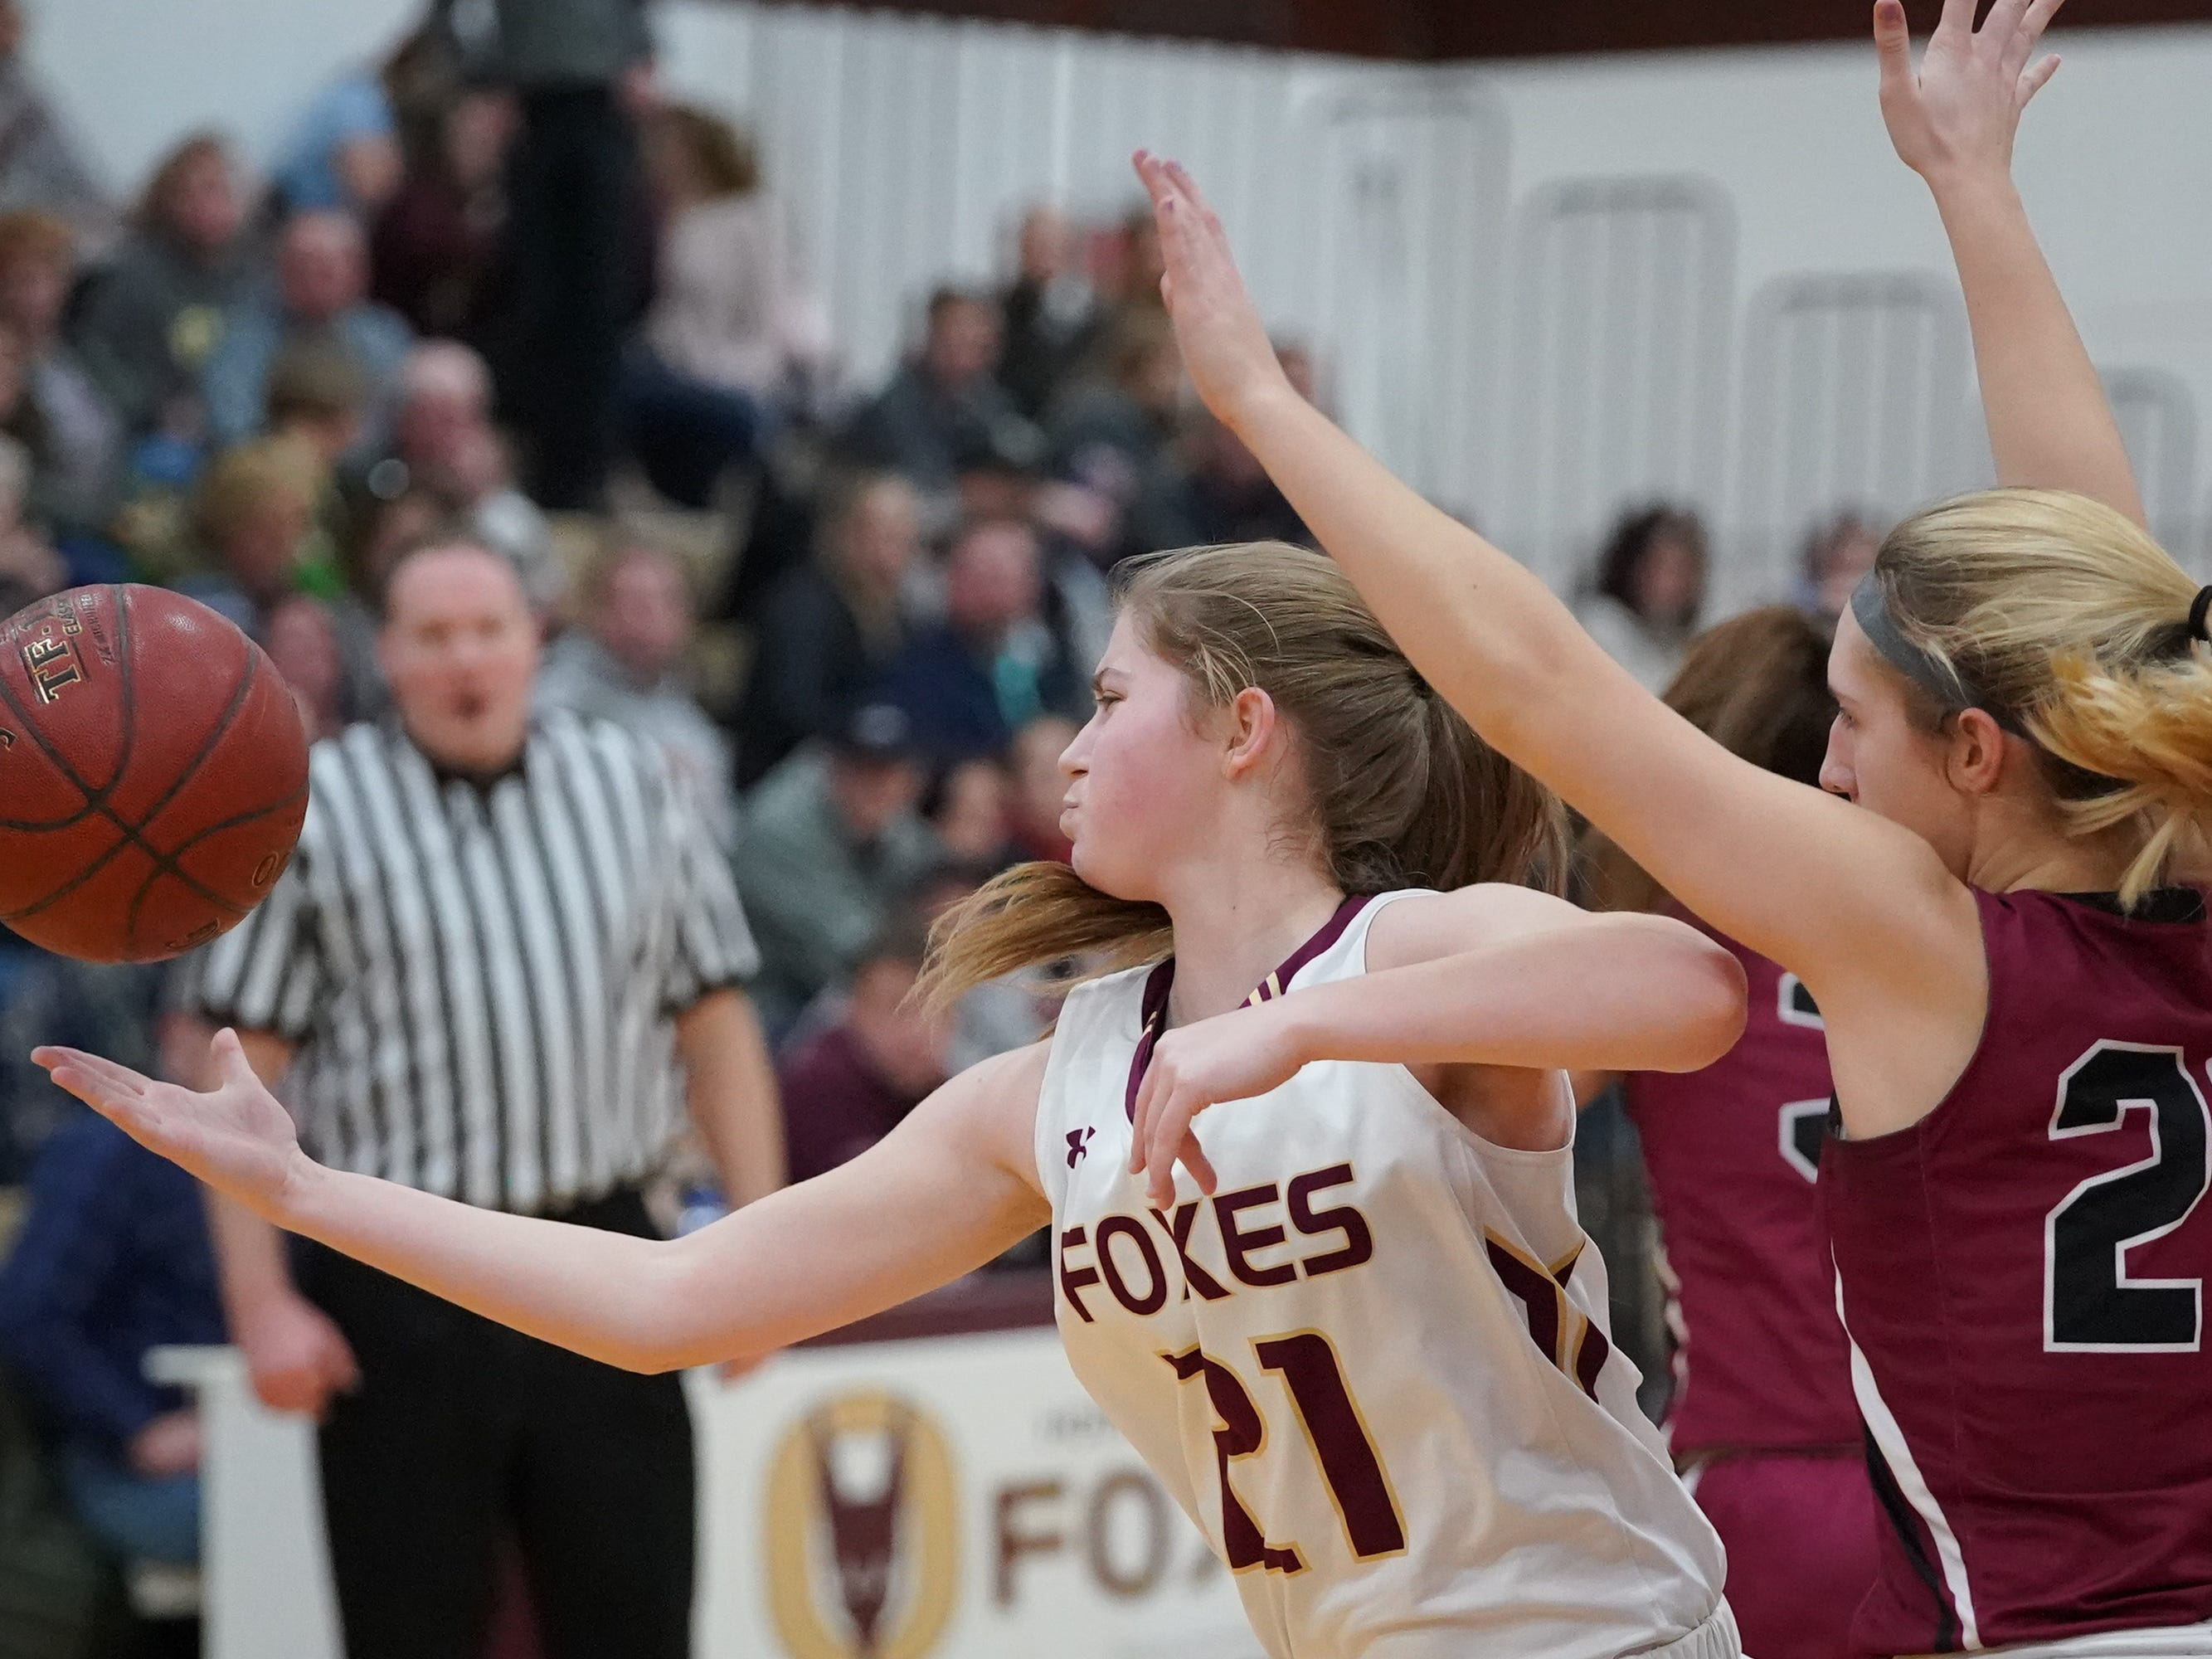 Tabitha Kilgas (21) of Omro reaches for a rebound. The Omro Foxes hosted the Mayville Cardinals in a Flyway Conference basketball game Friday evening, January 4, 2019.